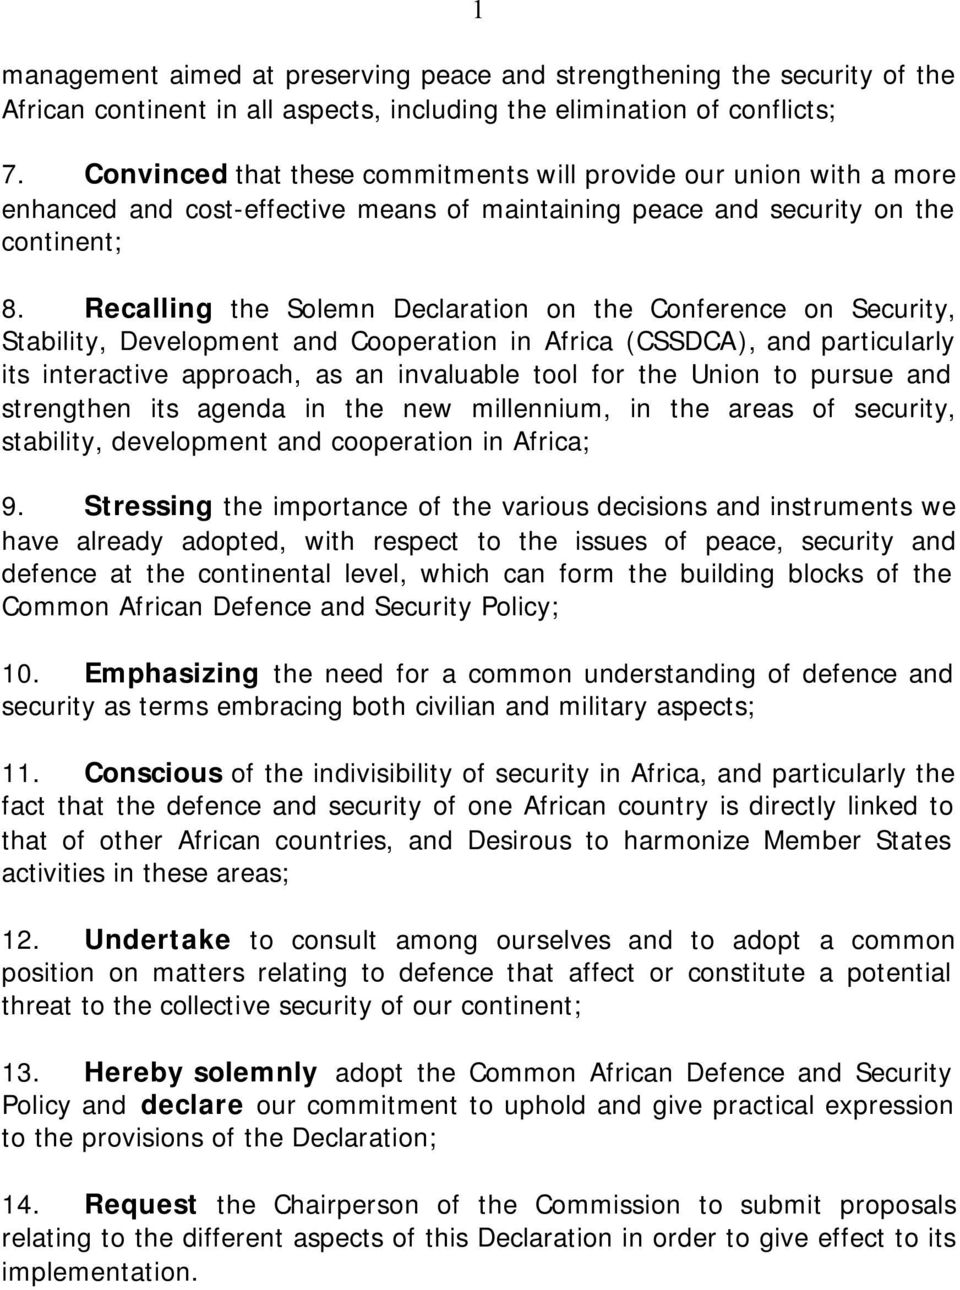 Recalling the Solemn Declaration on the Conference on Security, Stability, Development and Cooperation in Africa (CSSDCA), and particularly its interactive approach, as an invaluable tool for the